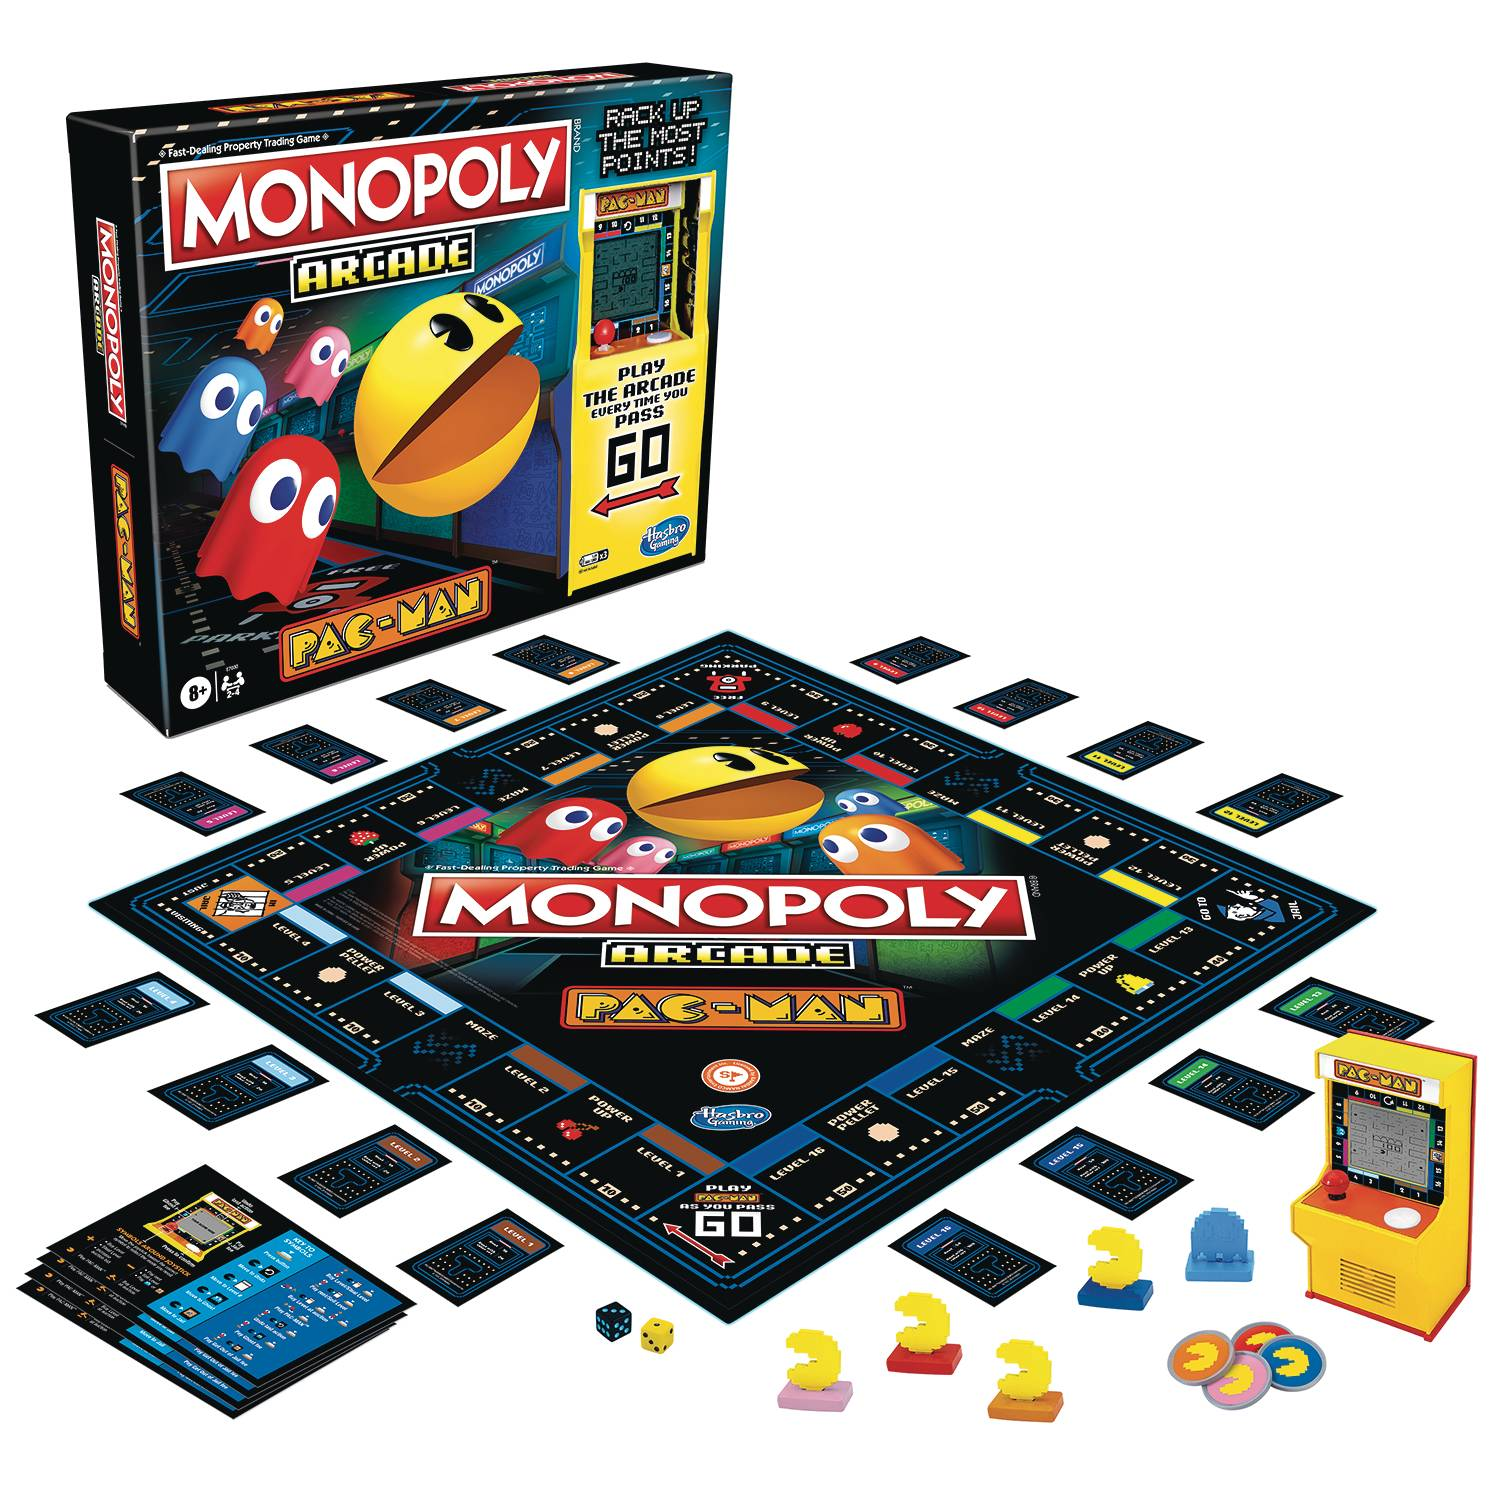 MONOPOLY ARCADE PAC-MAN EDITION GAME CS